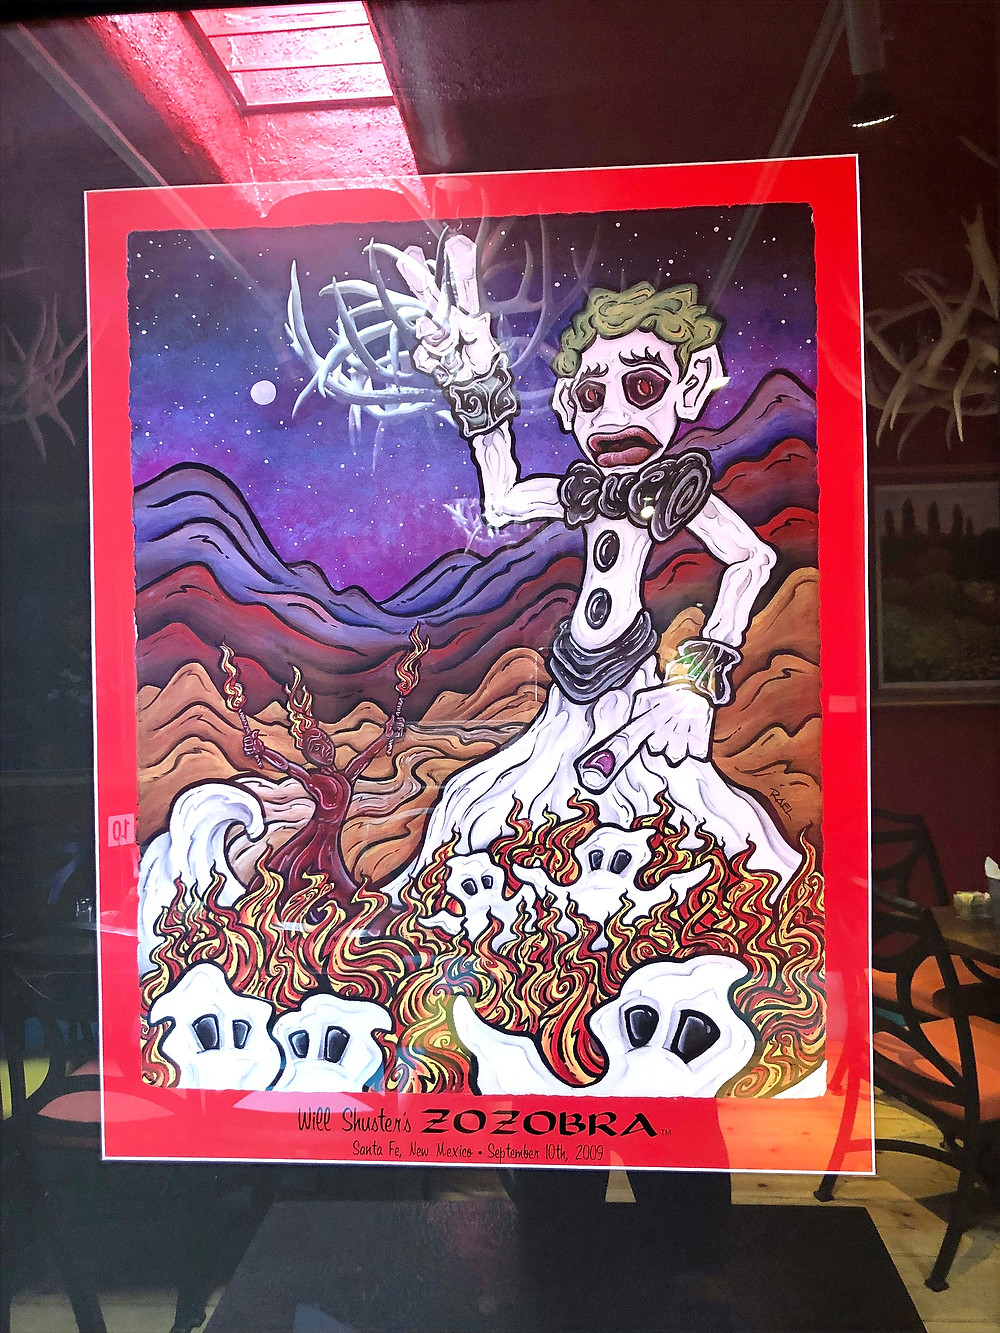 Painting of the Burning of Zozobra